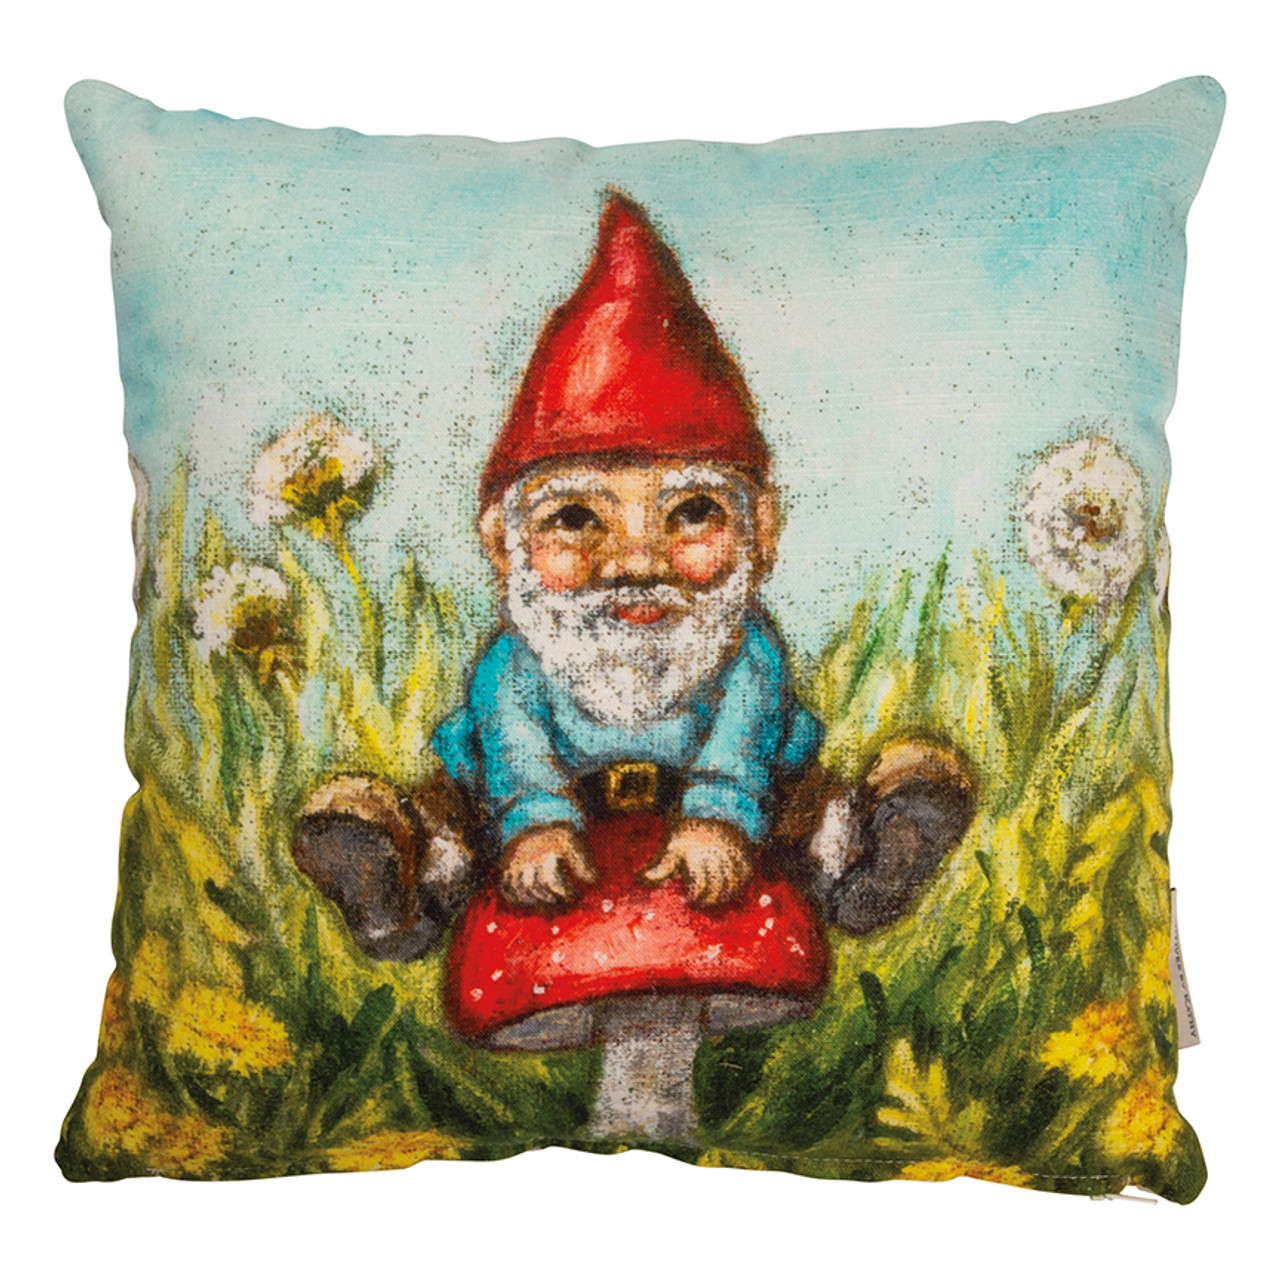 Cottage Garden Gnome Accent Pillow with Flowers and Red Mushroom - A